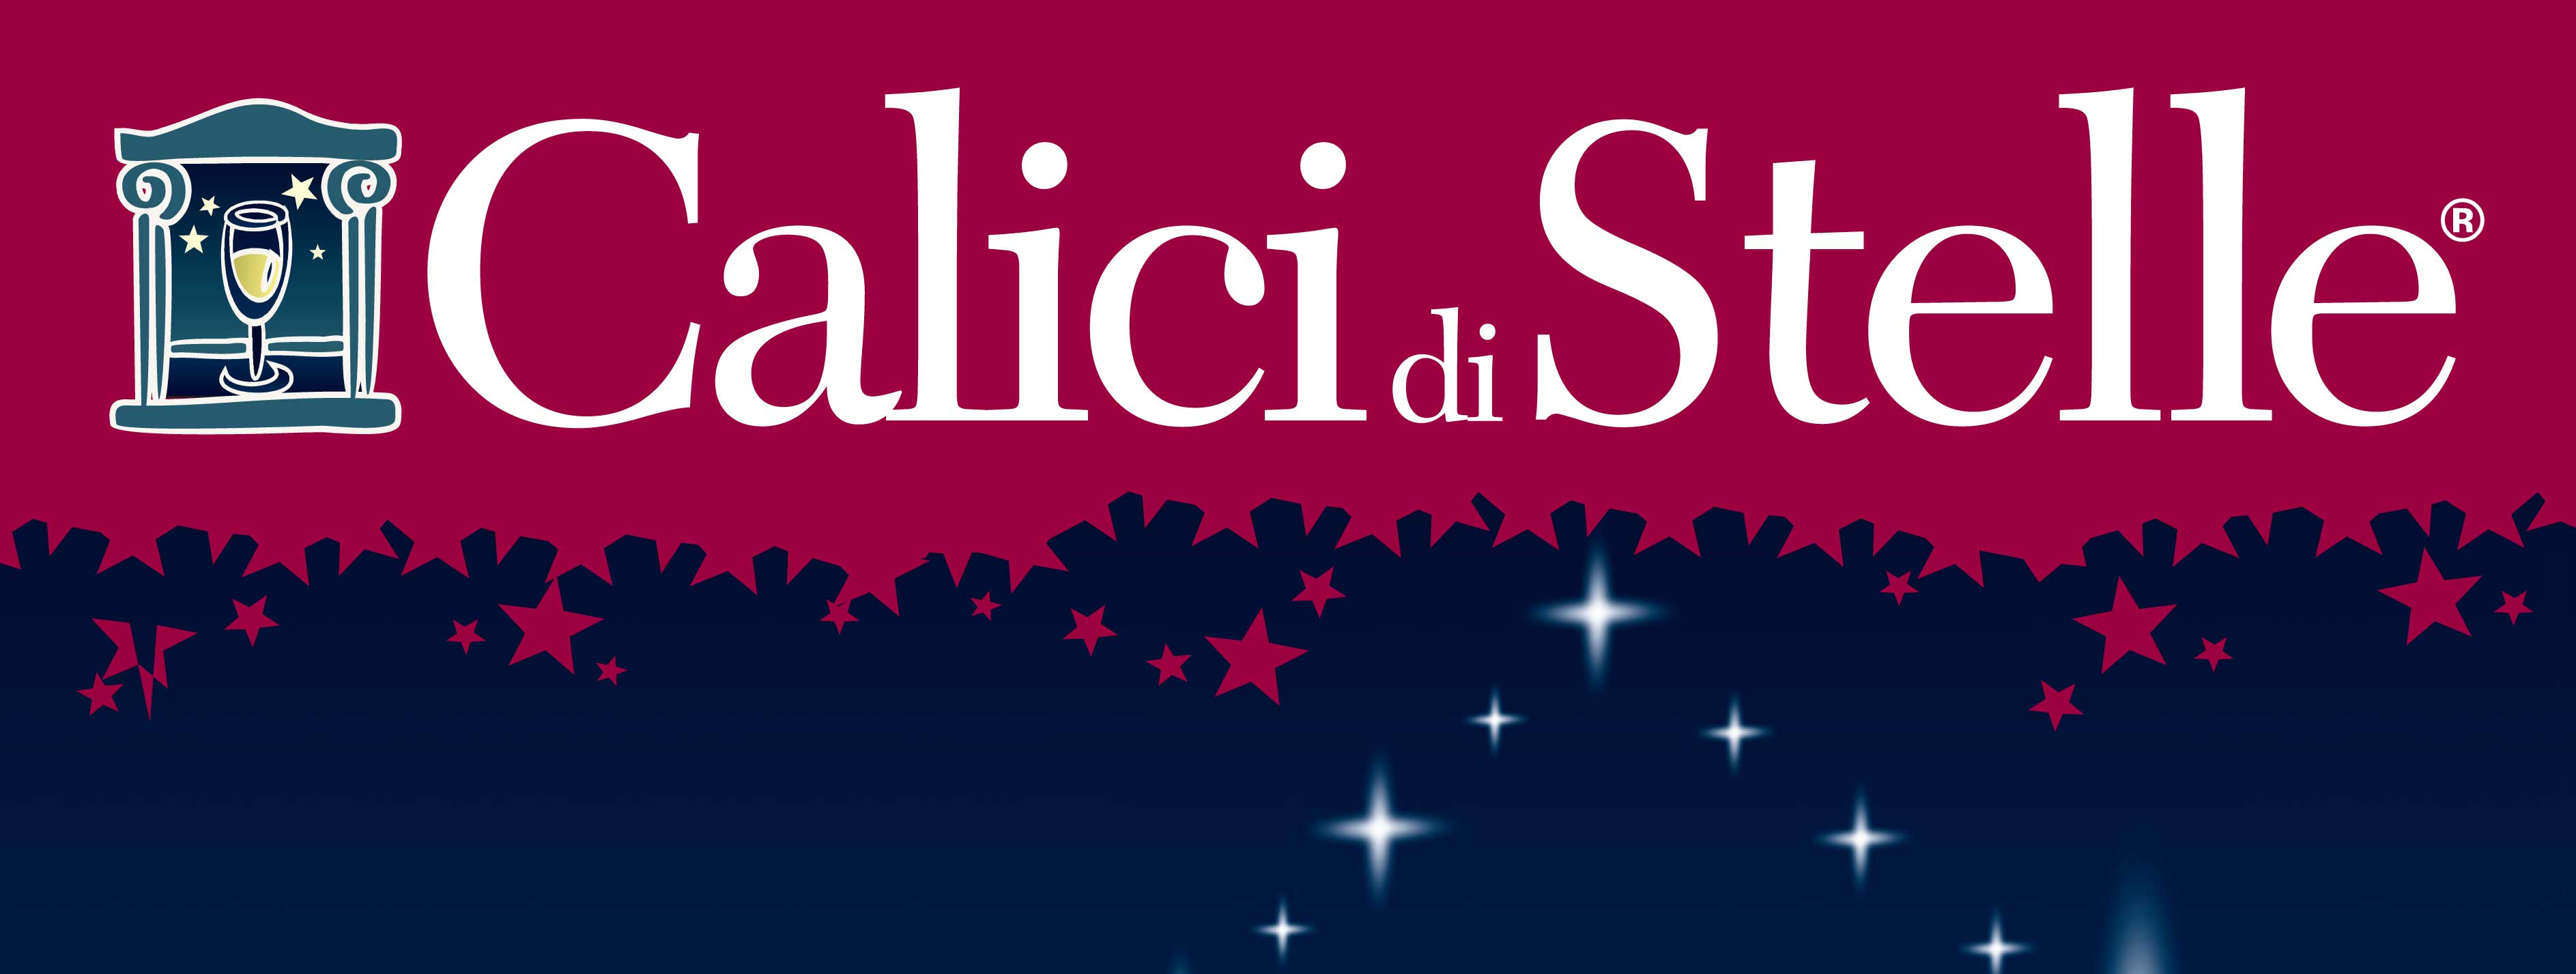 Calici di Stelle in Liguria